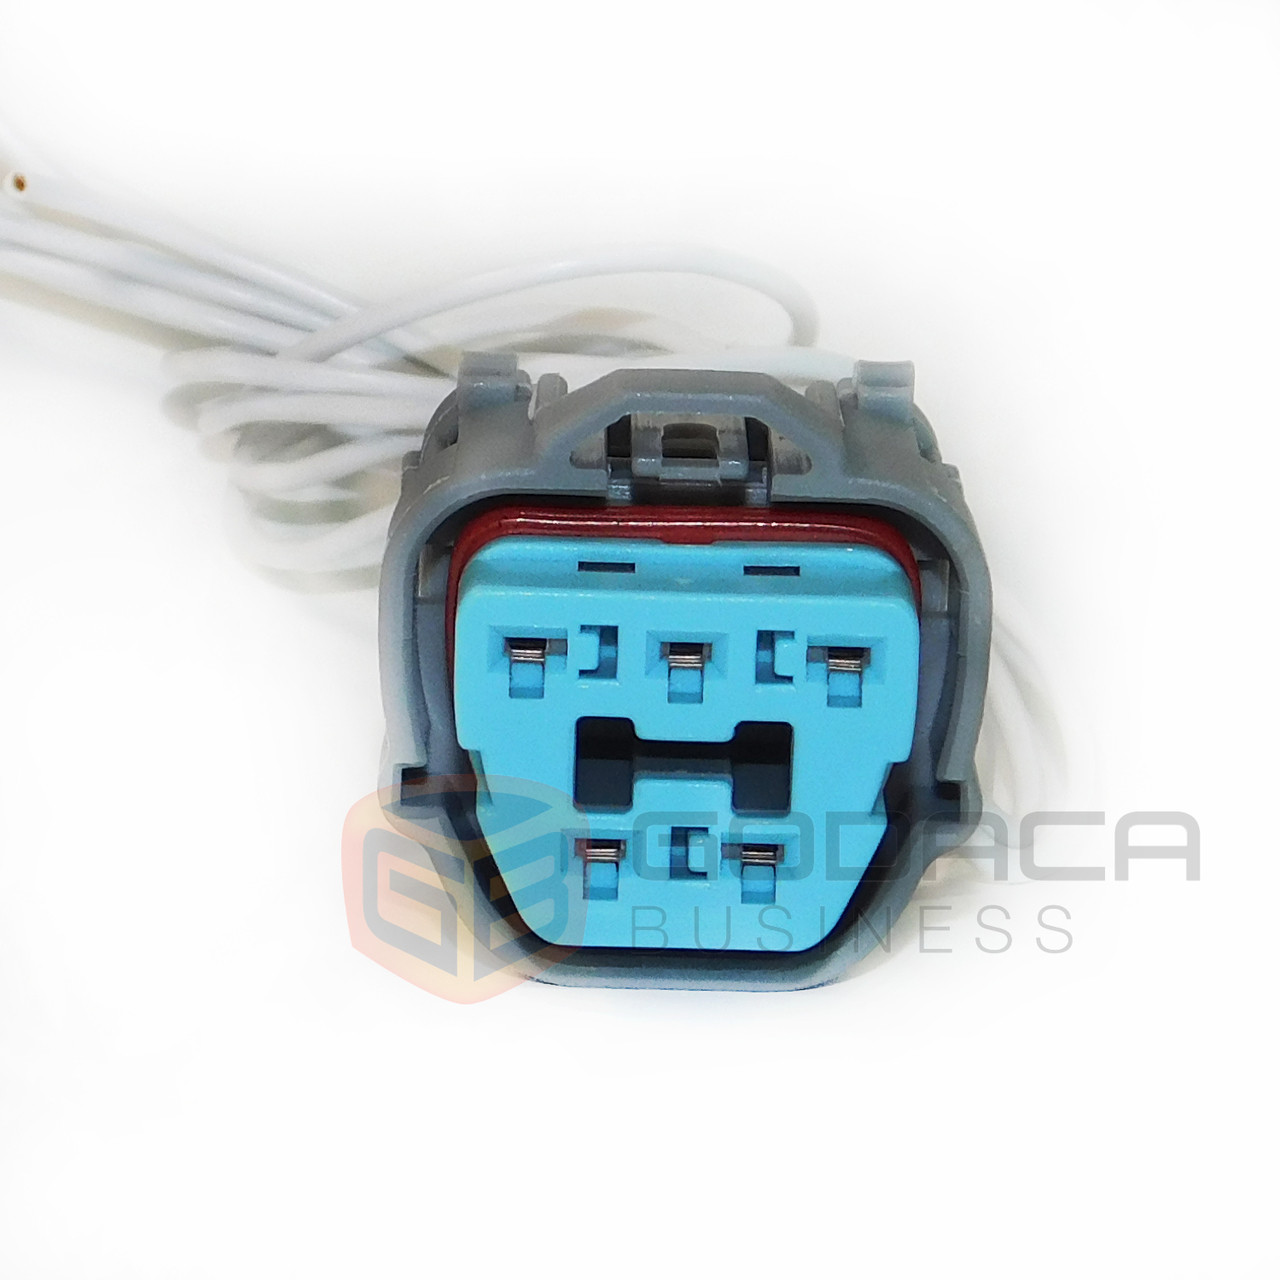 hight resolution of connector fuel pump harness pigtail for honda civic accord 5 way with wire godaca llc